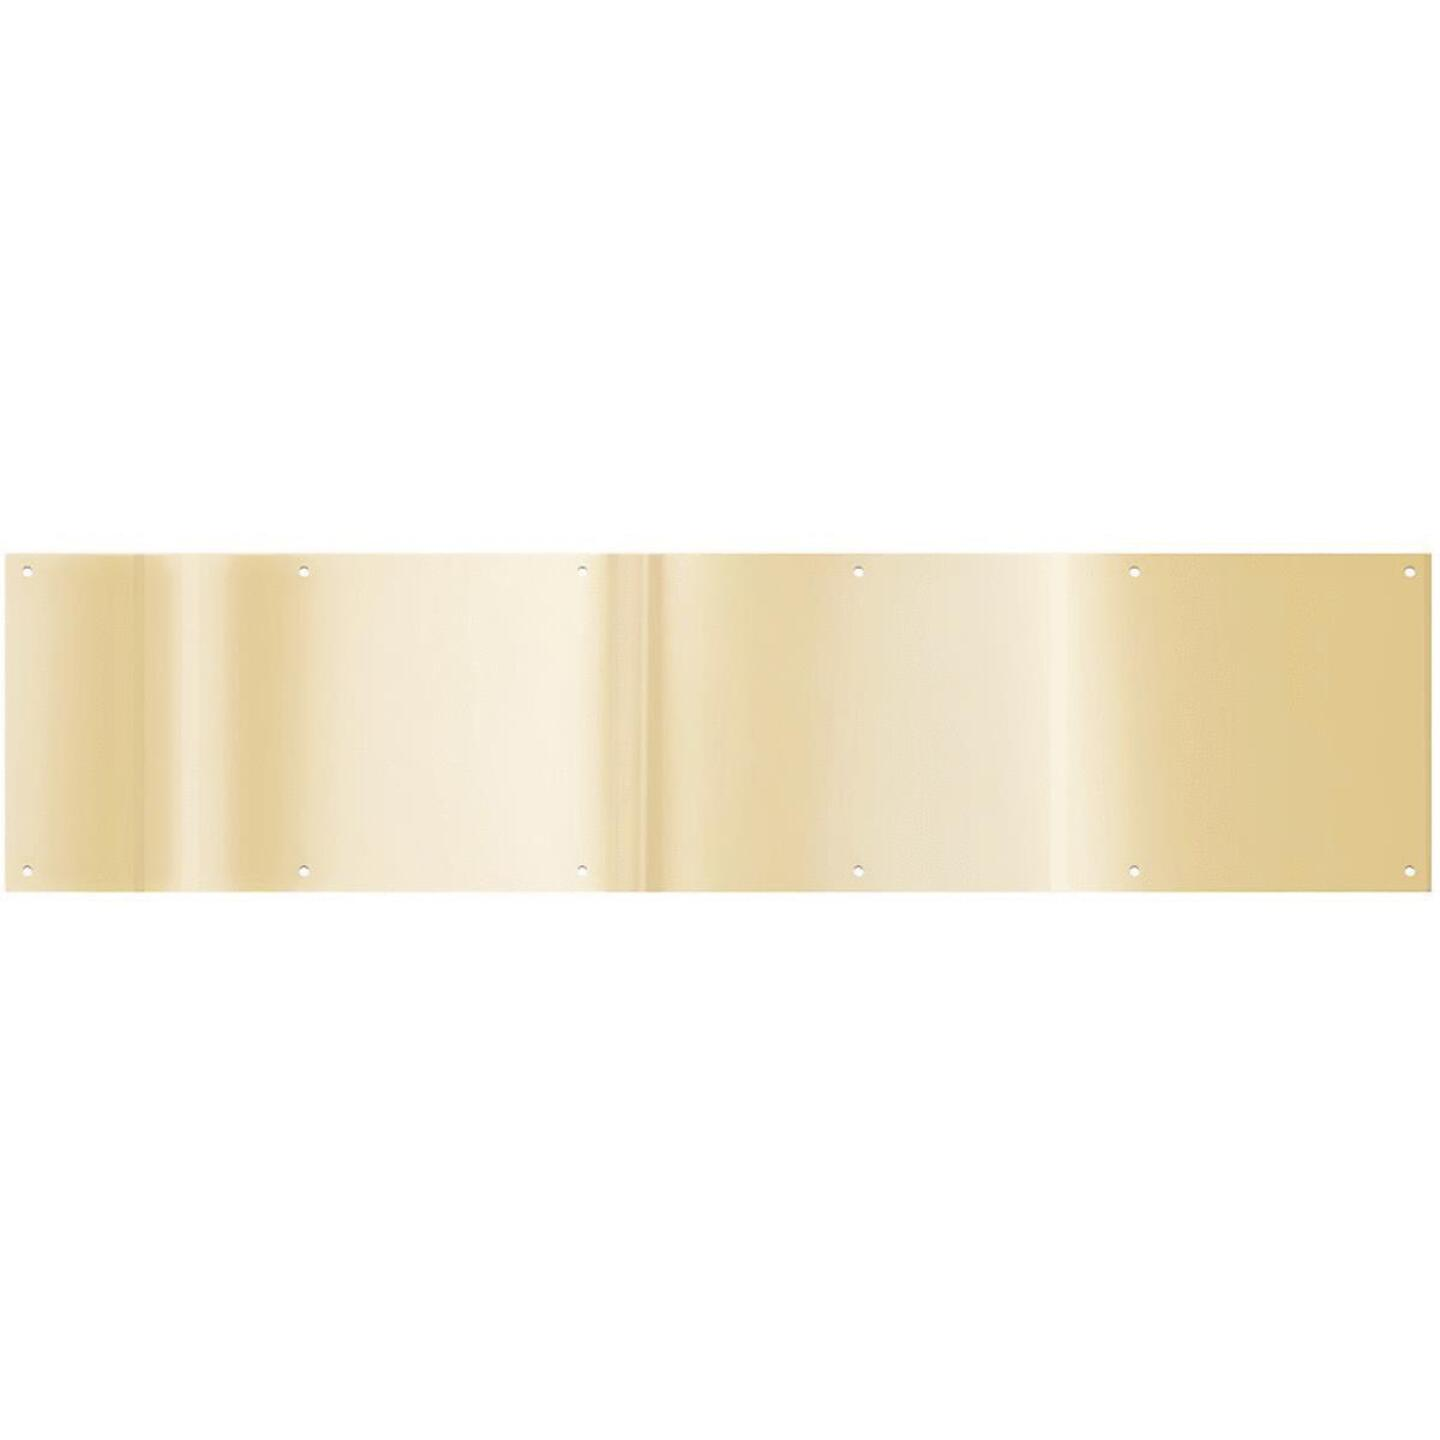 National 8 In. x 34 In. Brass Aluminum Kickplate Image 1